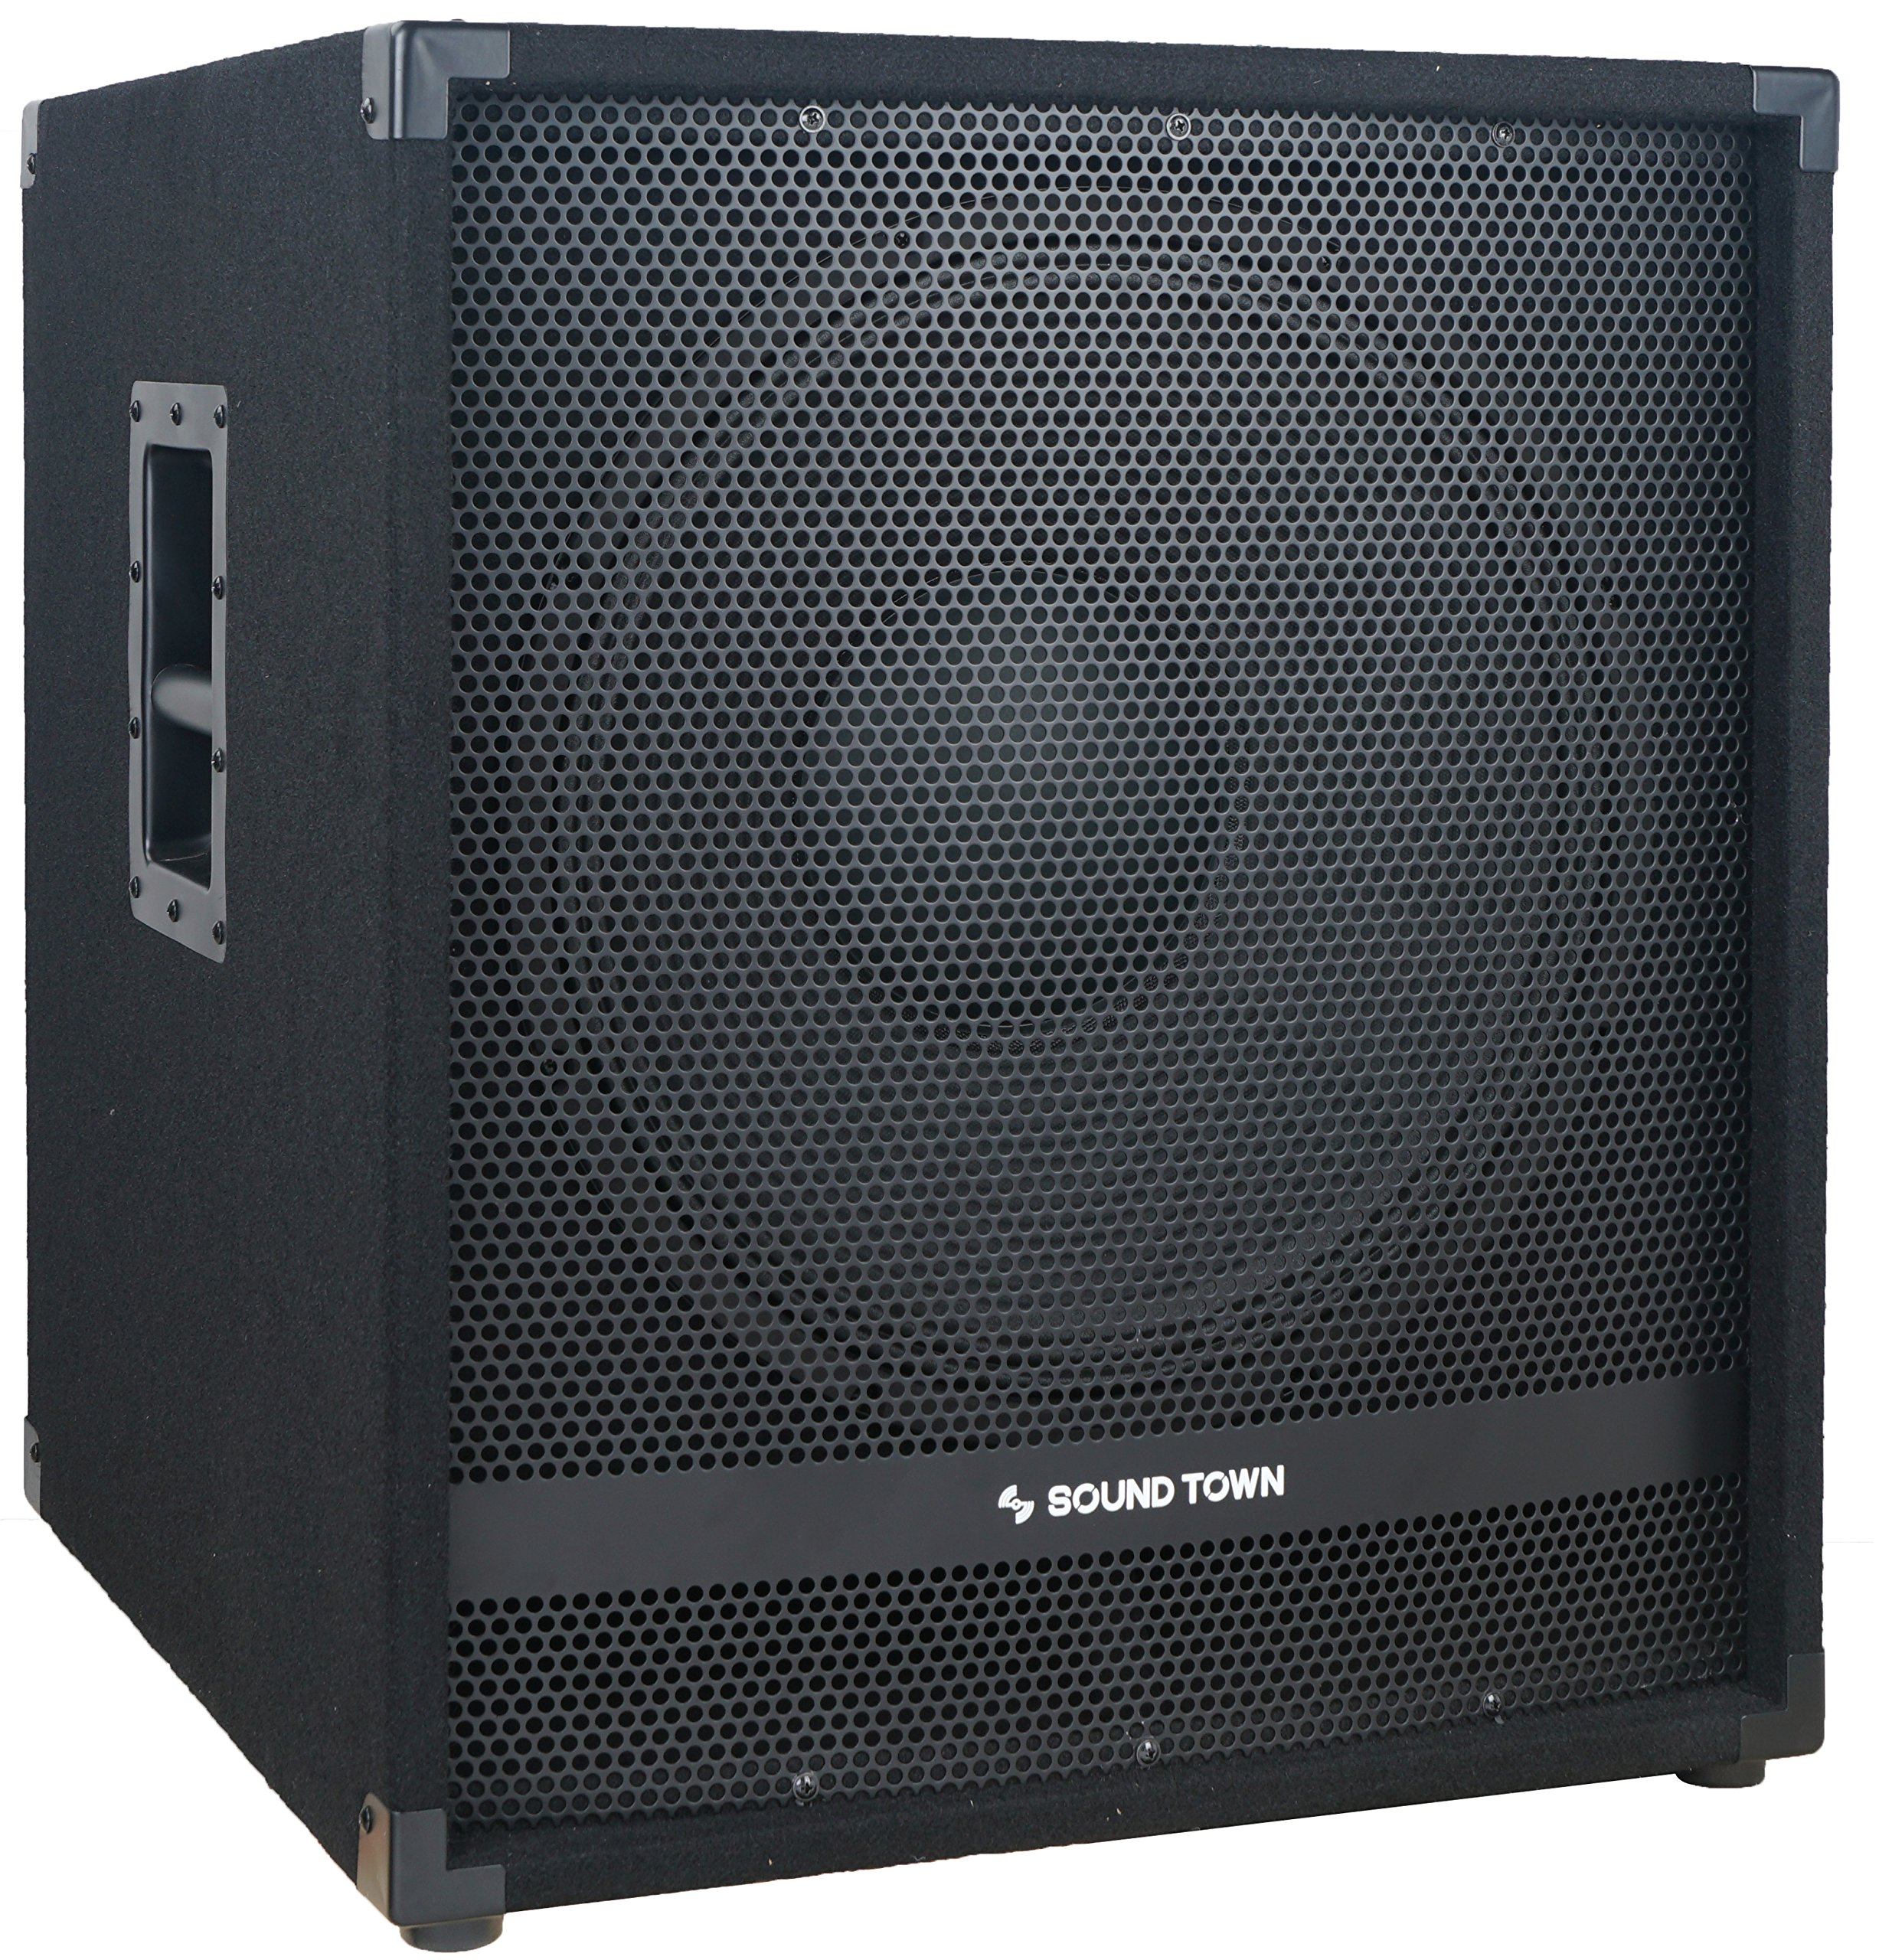 Sound Town METIS Series 1600 Watts 15'' Powered Subwoofer with DSP, DJ PA Pro Audio Sub with 4 inch Voice Coil (METIS-15SPW) by Sound Town